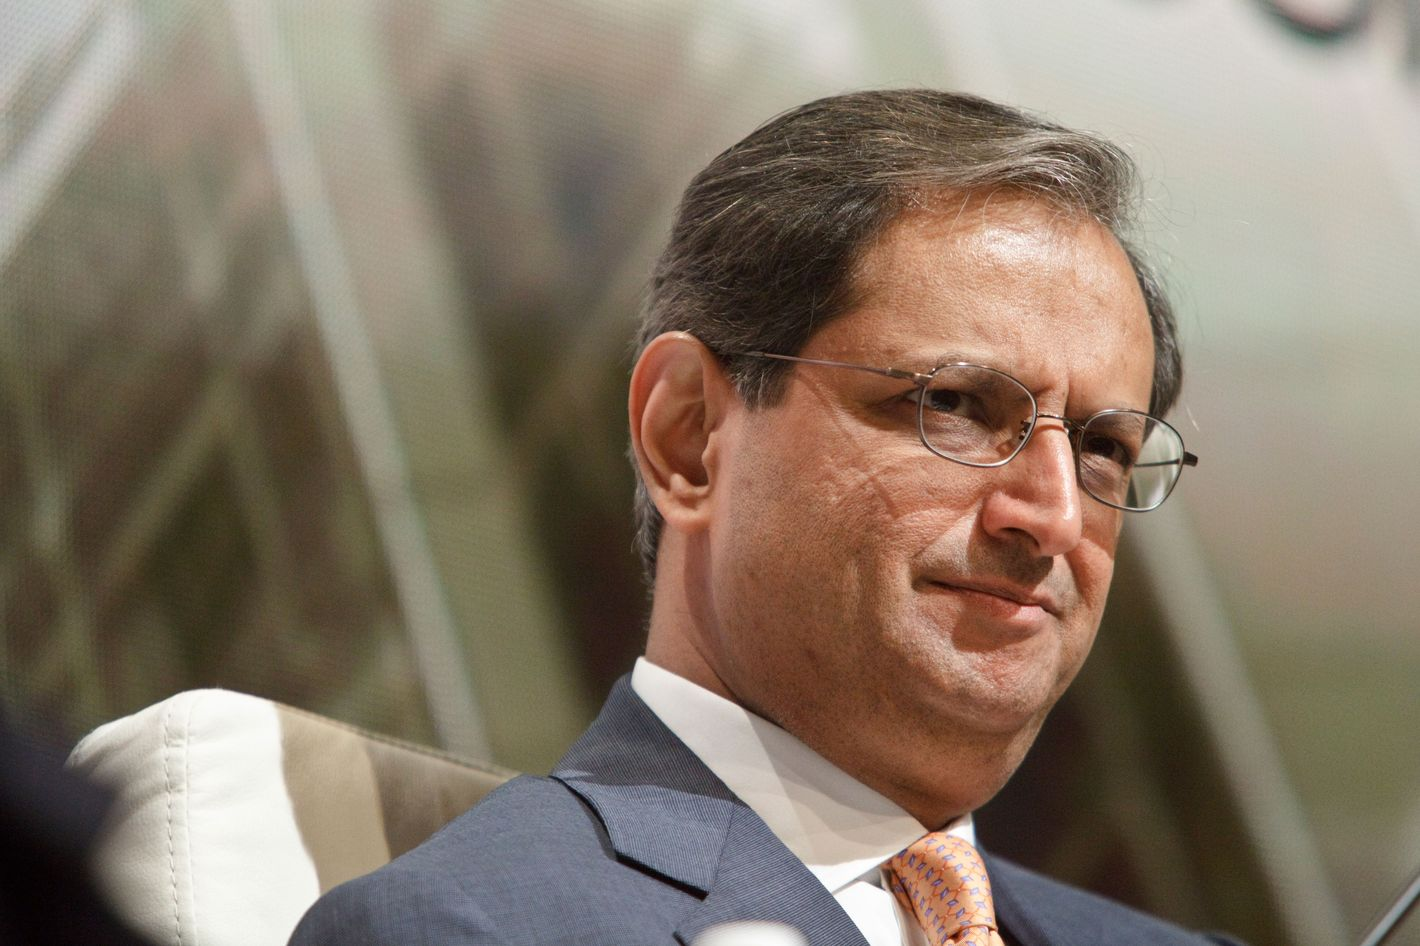 23 Jun 2010 --- Vikram Pandit, CEO of Citigroup, speaking on day two of the New York Forum in New York City.